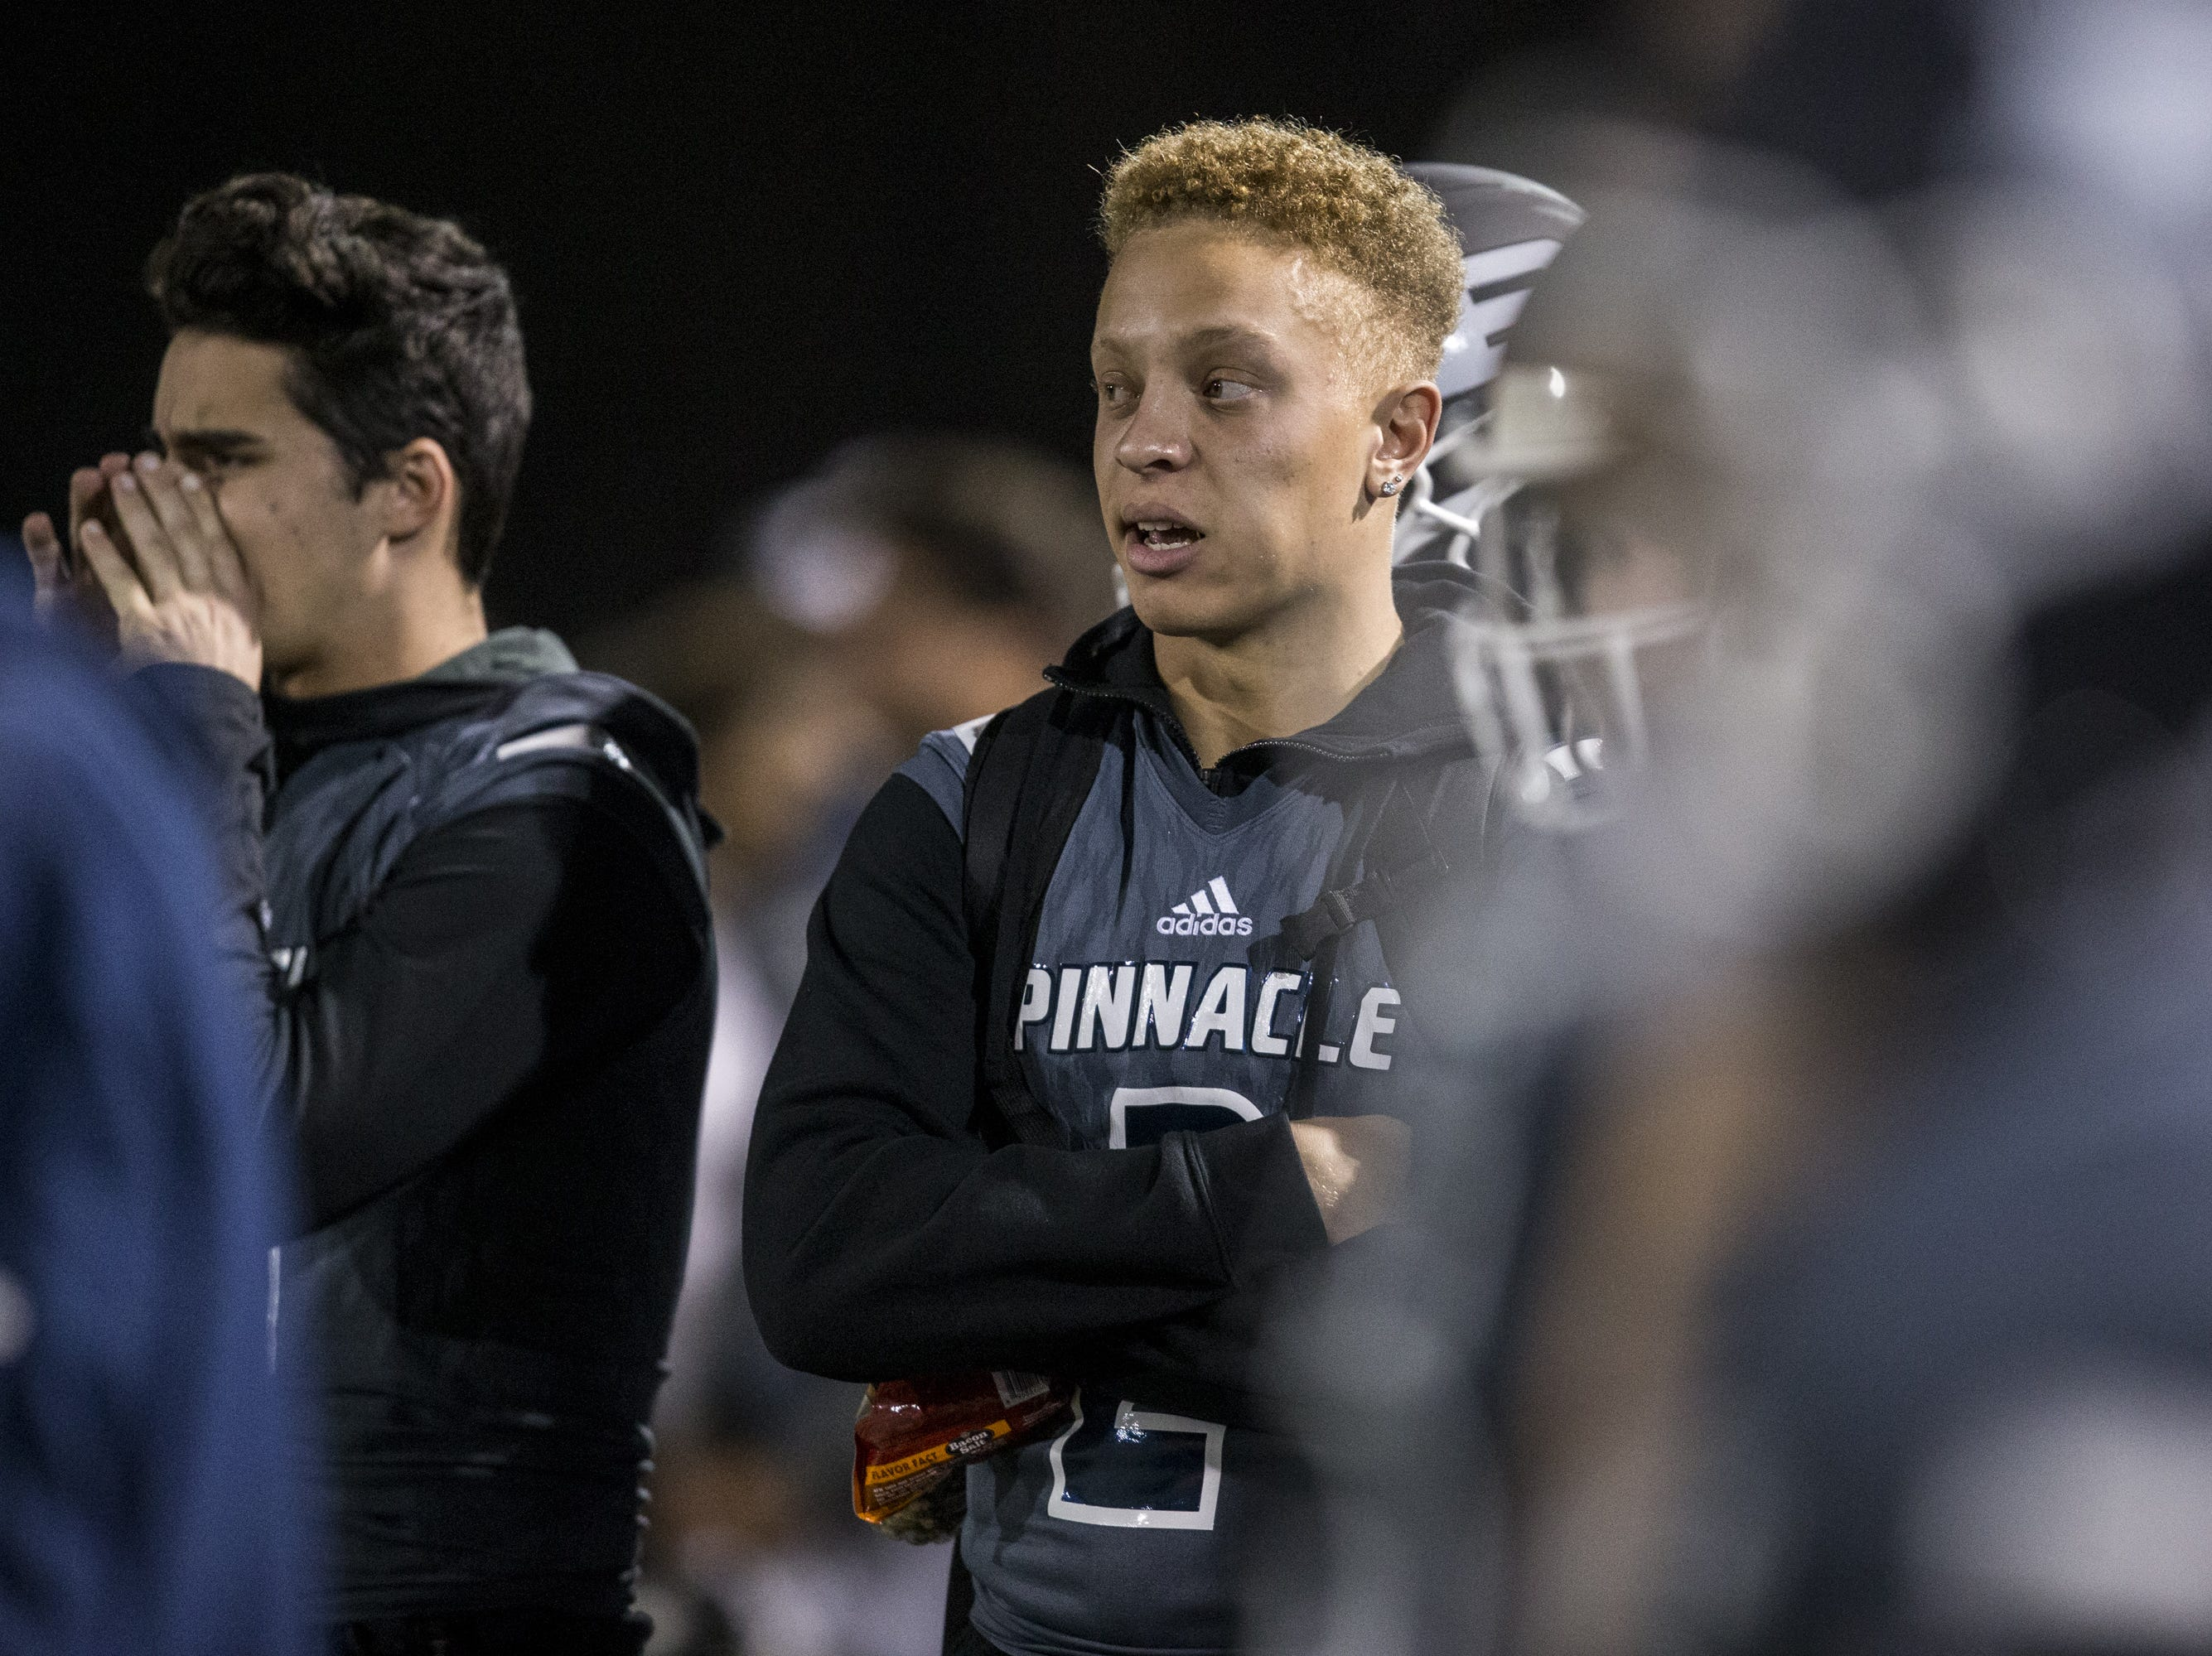 Pinnacle's Spencer Rattler watches the game against Perry from the sideline on Friday, Nov. 16, 2018, at North Canyon High School in Phoenix.  #azhsb